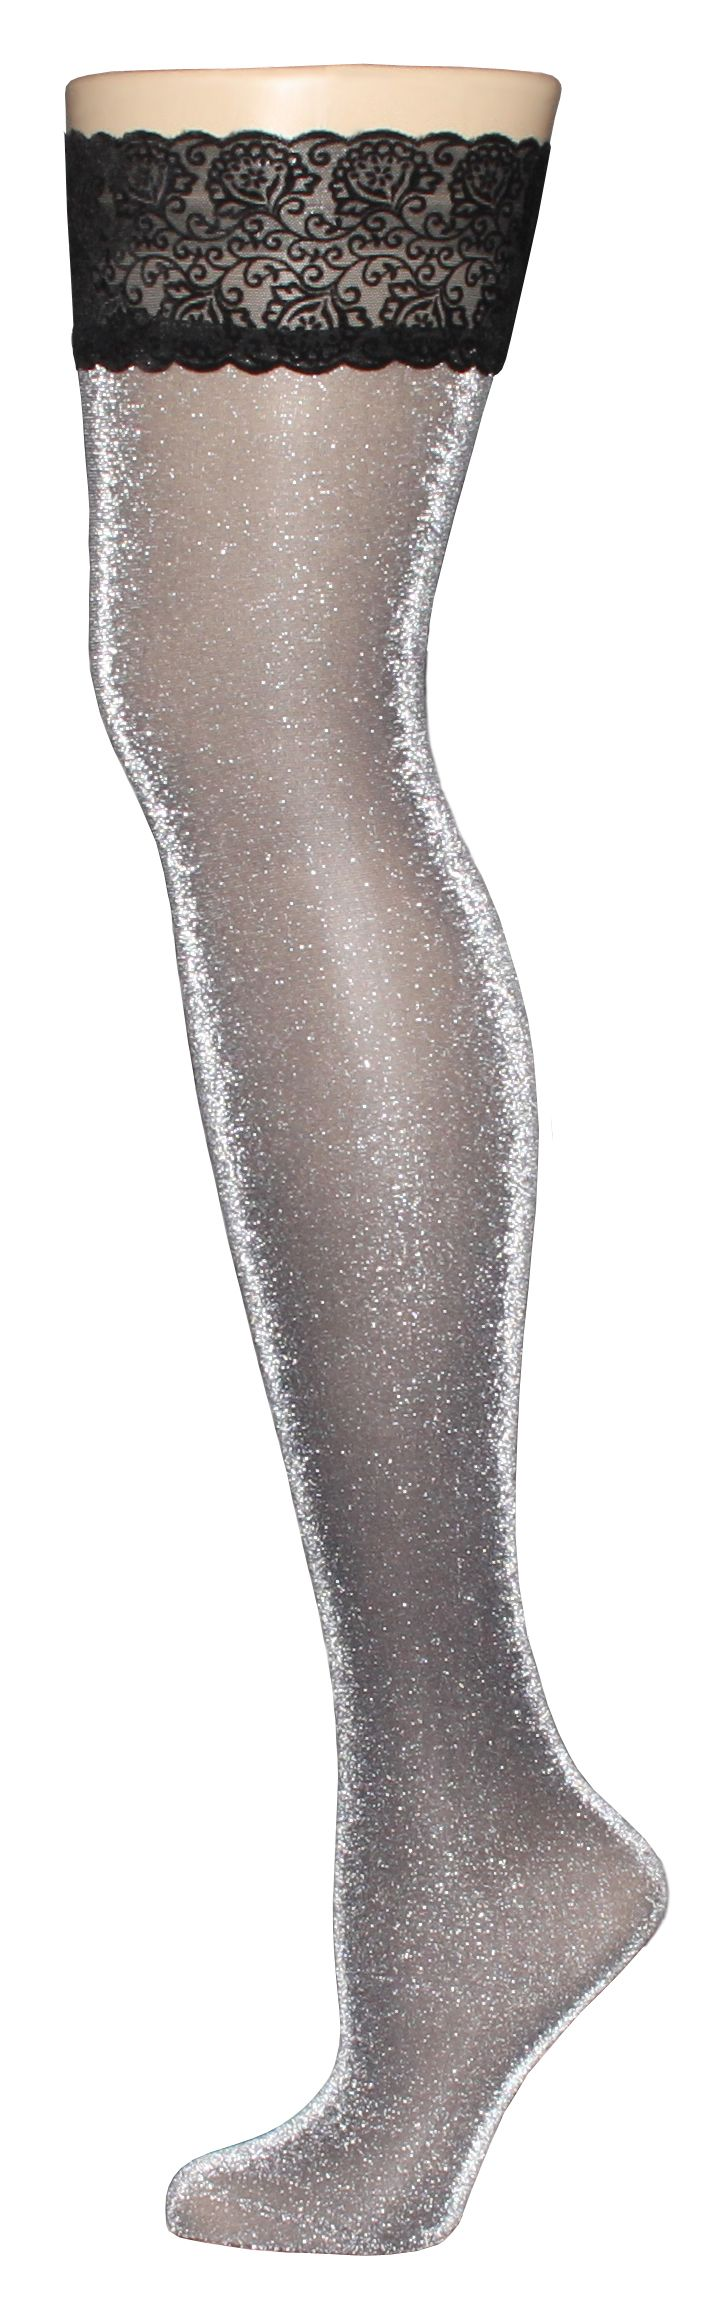 Showcase your glittery personality GISELLA Silver Sparkle hosiery. All eyes will be on you as you strut your stuff in gorgeous silver! Additionally, the velvet band on these stockings will securely and comfortably hold up this pair of stockings on your leg. If you're feeling especially sassy, you can also wear them for a playful weekend. VienneMilano thigh high stockings do not require a garter belt.